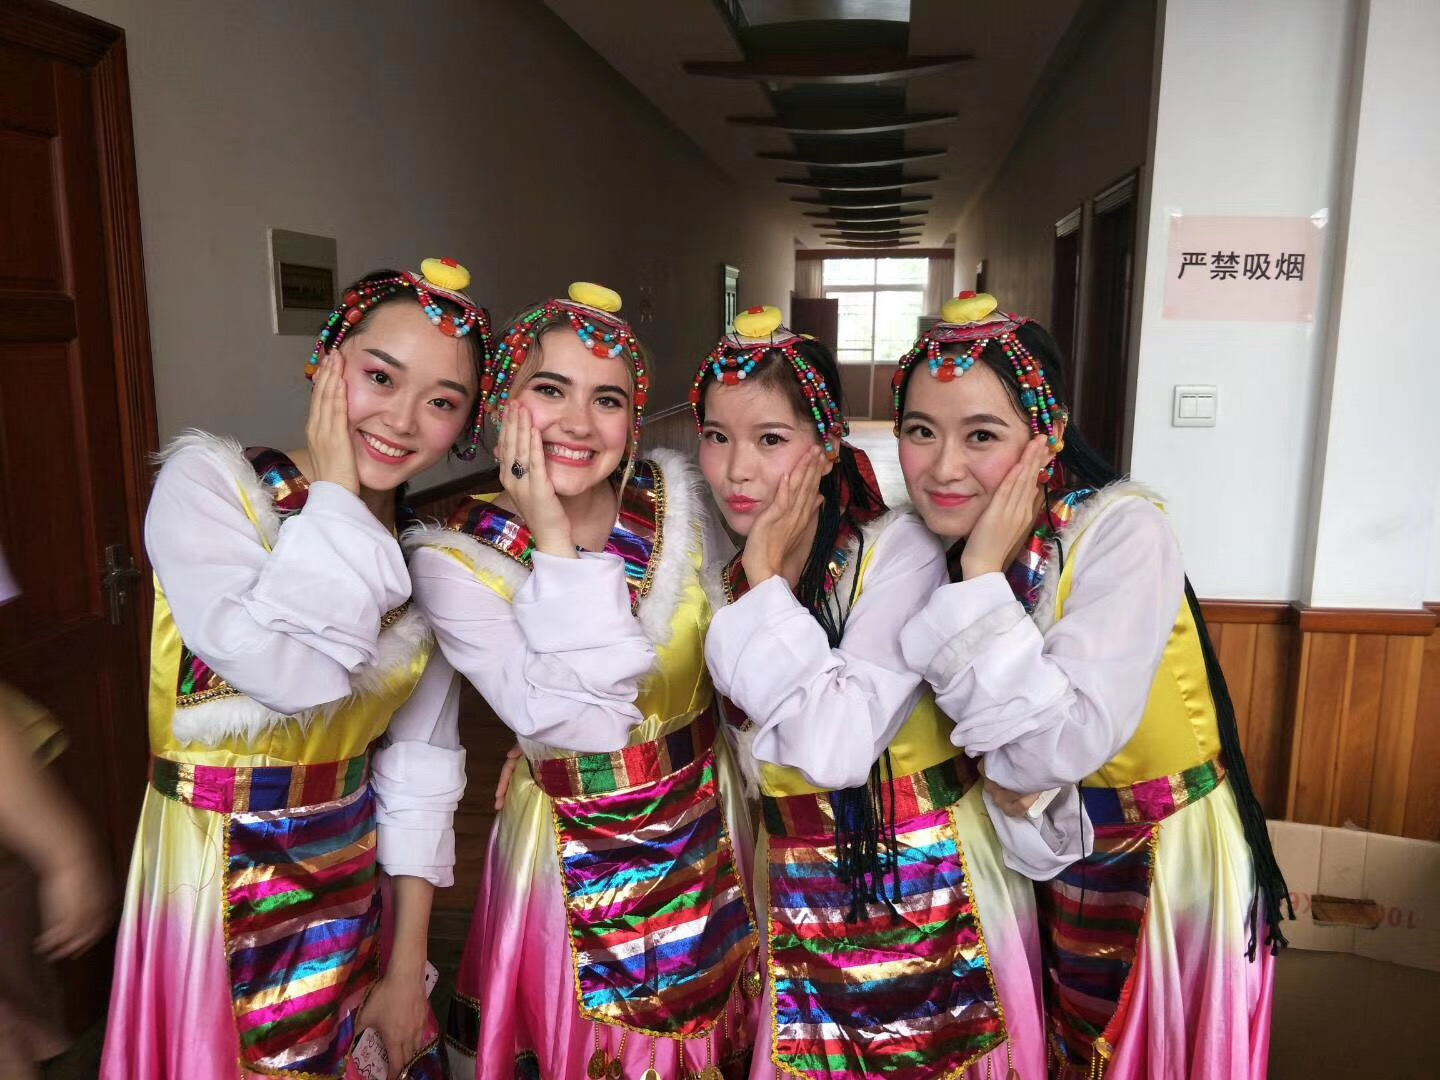 Samanthaand her friends wearing traditional clothing